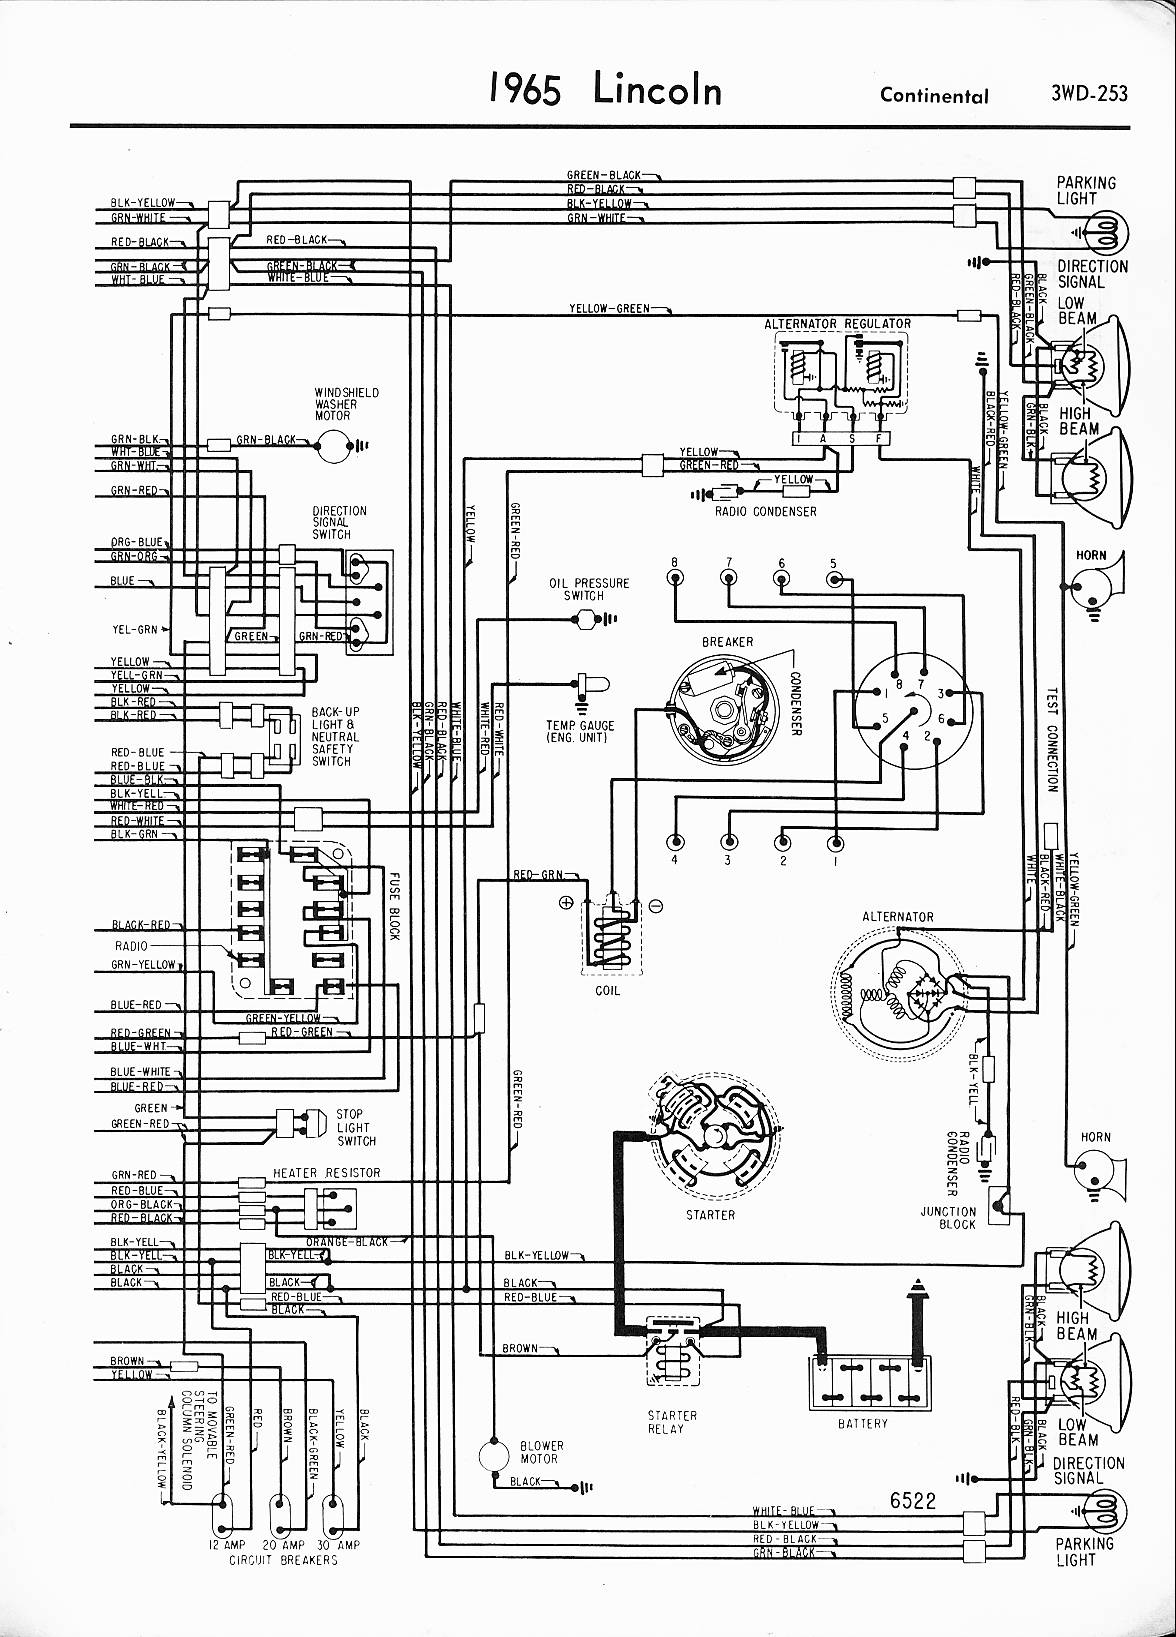 96 Lincoln Continental Engine Diagram Wiring Library 1995 Grand Am 1994 Diagrams Simple Horn Schematics And 1991